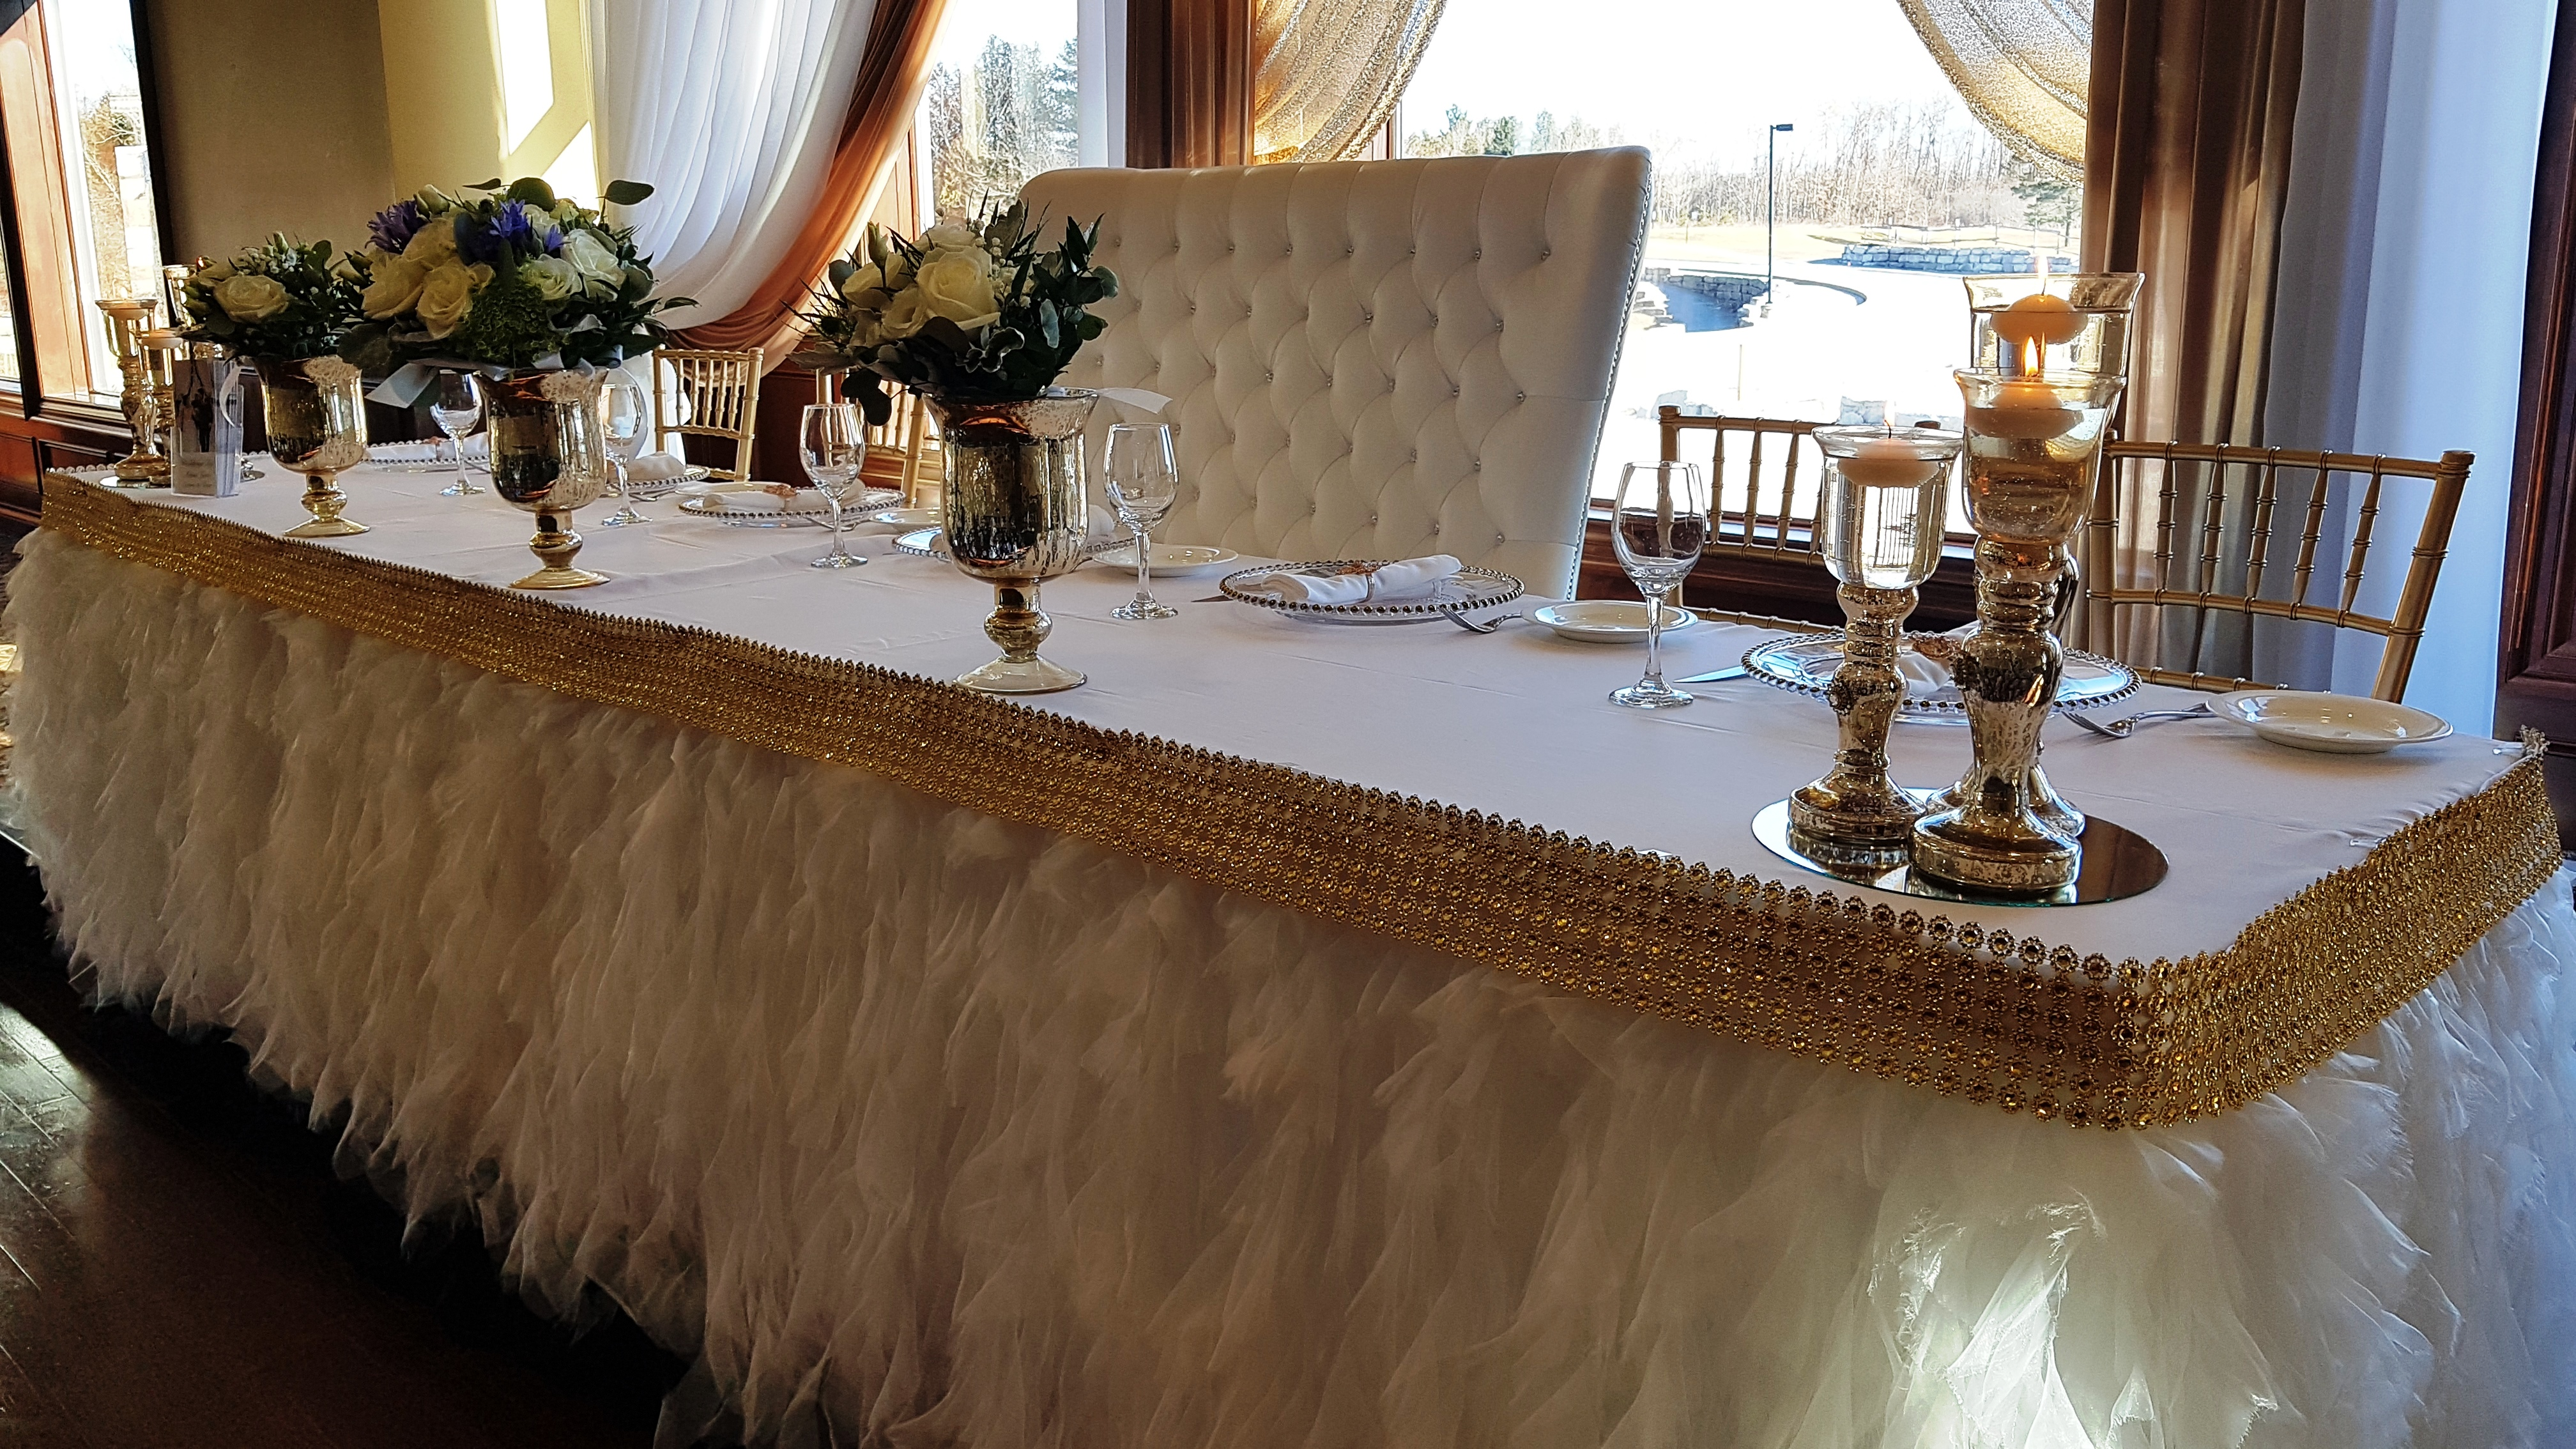 Ribbon Skirting With Gold Band Ht Decor 2 Annie Lane Events Decor